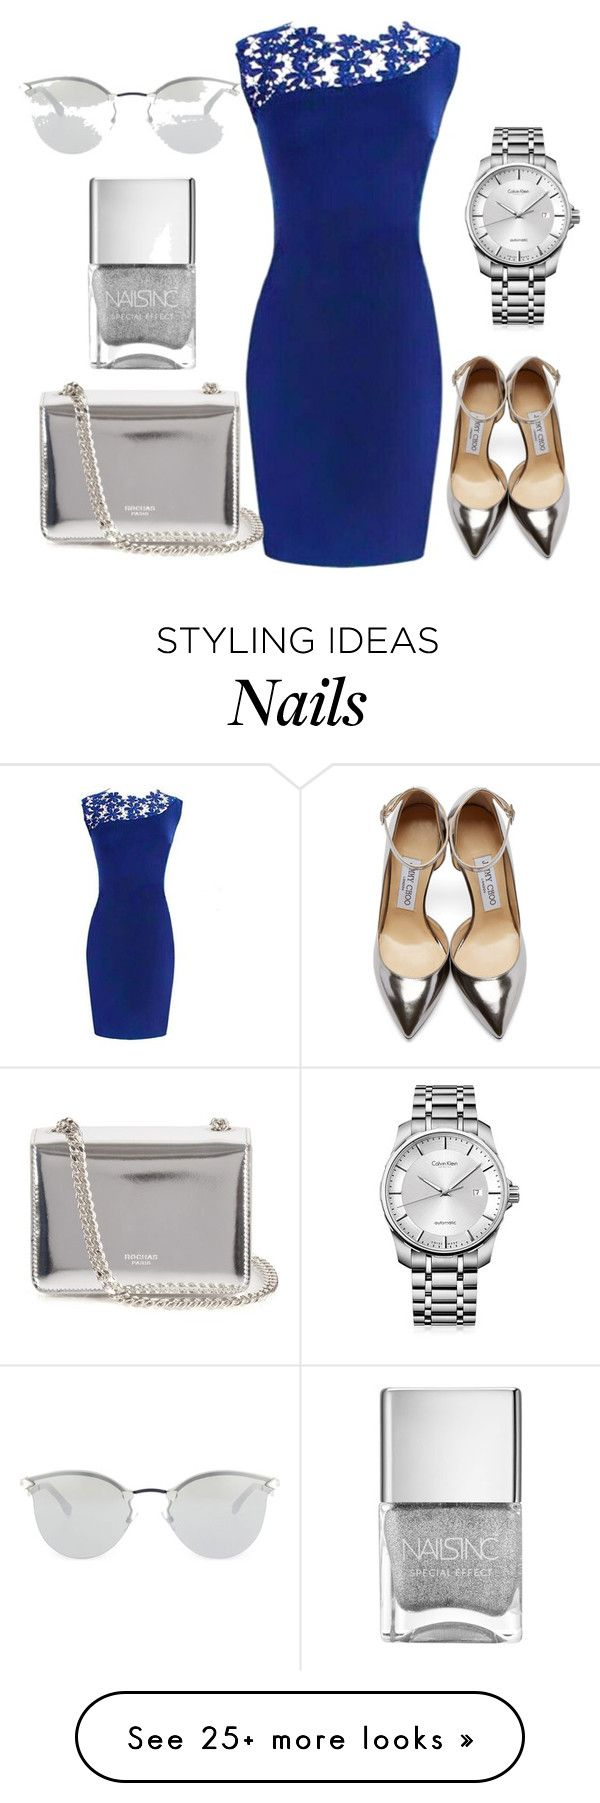 """Untitled #426"" by mademoisellemilic on Polyvore featuring Jimmy Choo, Rochas, Calvin Klein and Fendi"